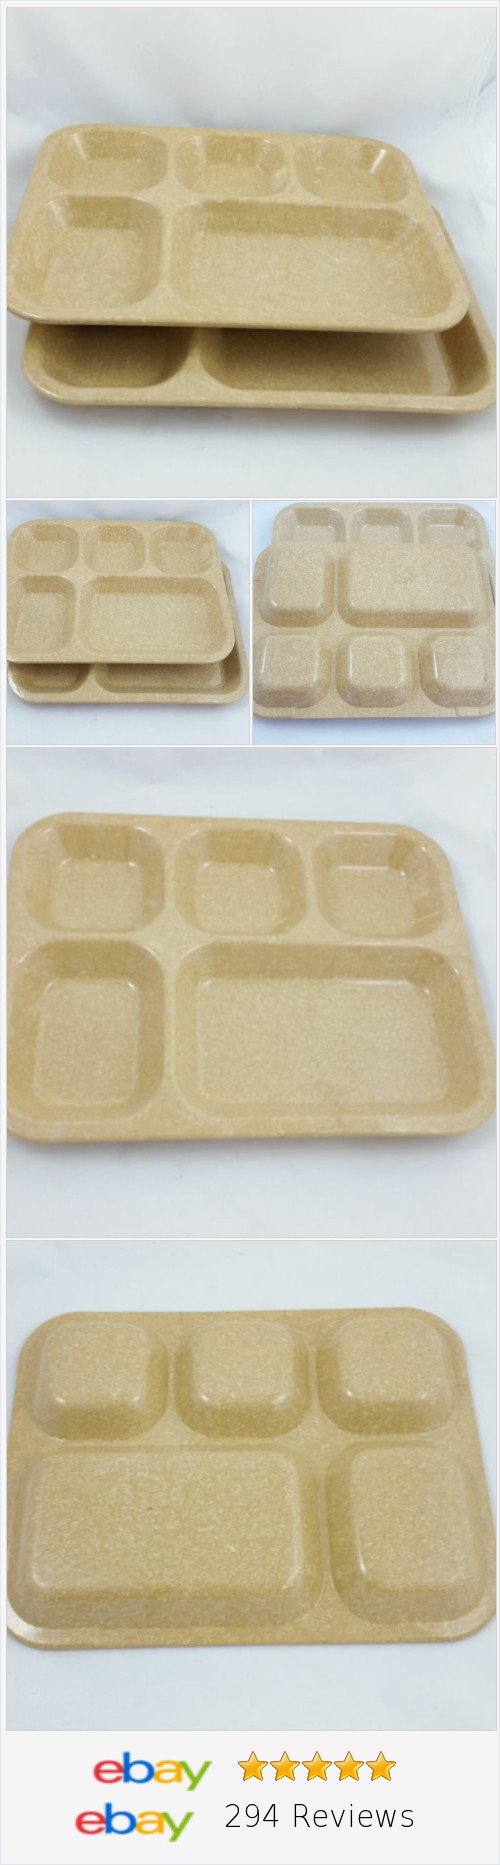 2 Brown Halsey Plastic Separated Divided Serving Trays Camping Dining Mess 1992